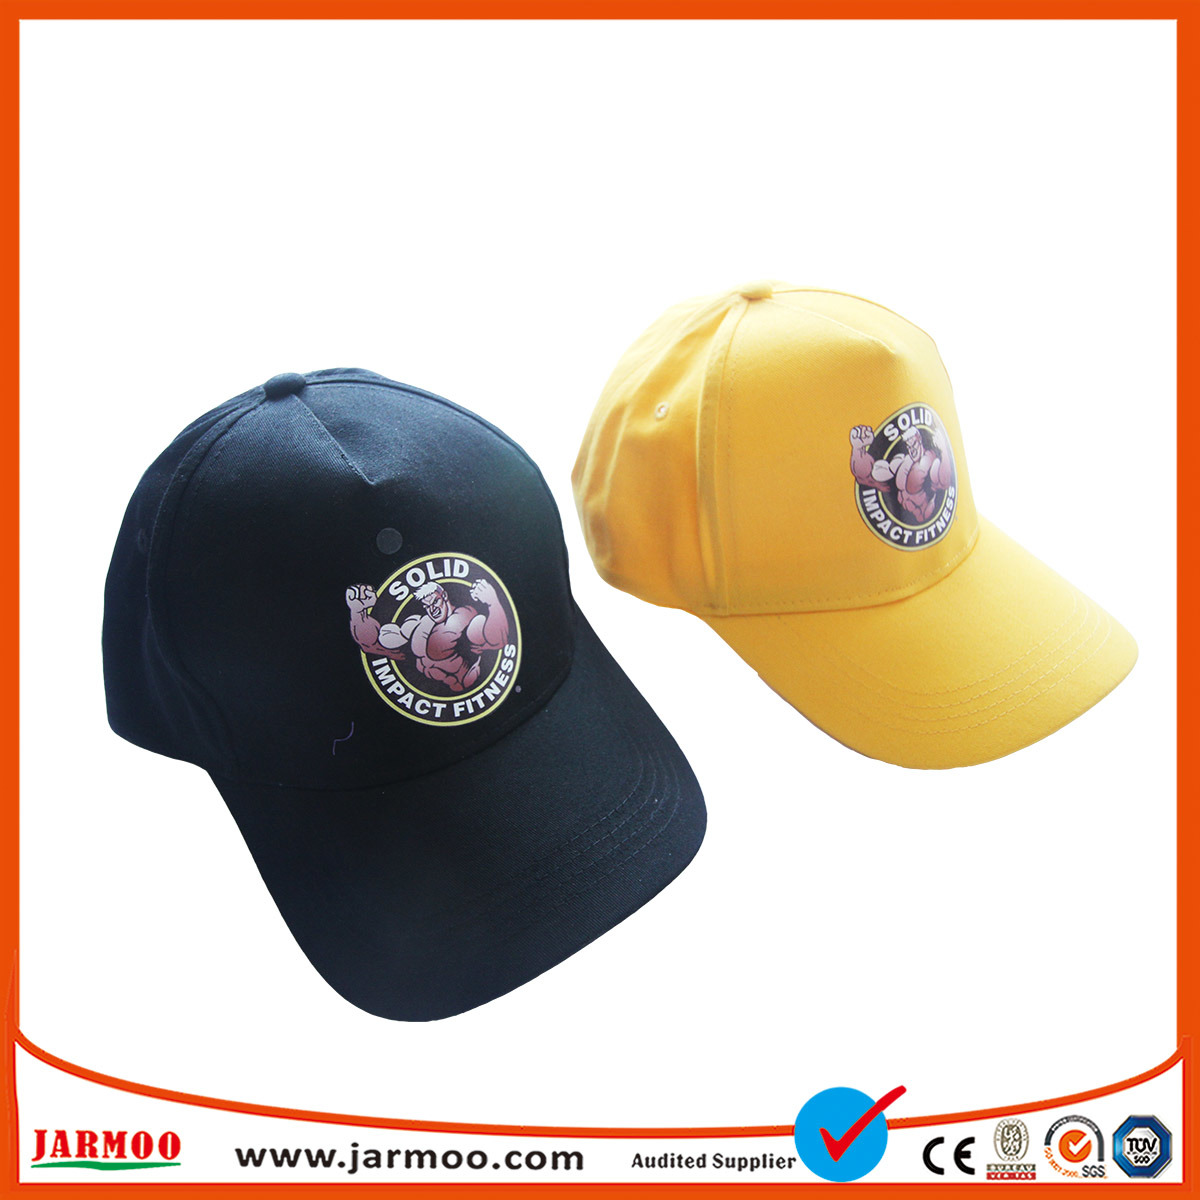 77962f7b982 China Cotton Printing Breathable Men Caps Hats for Promotional Event ...